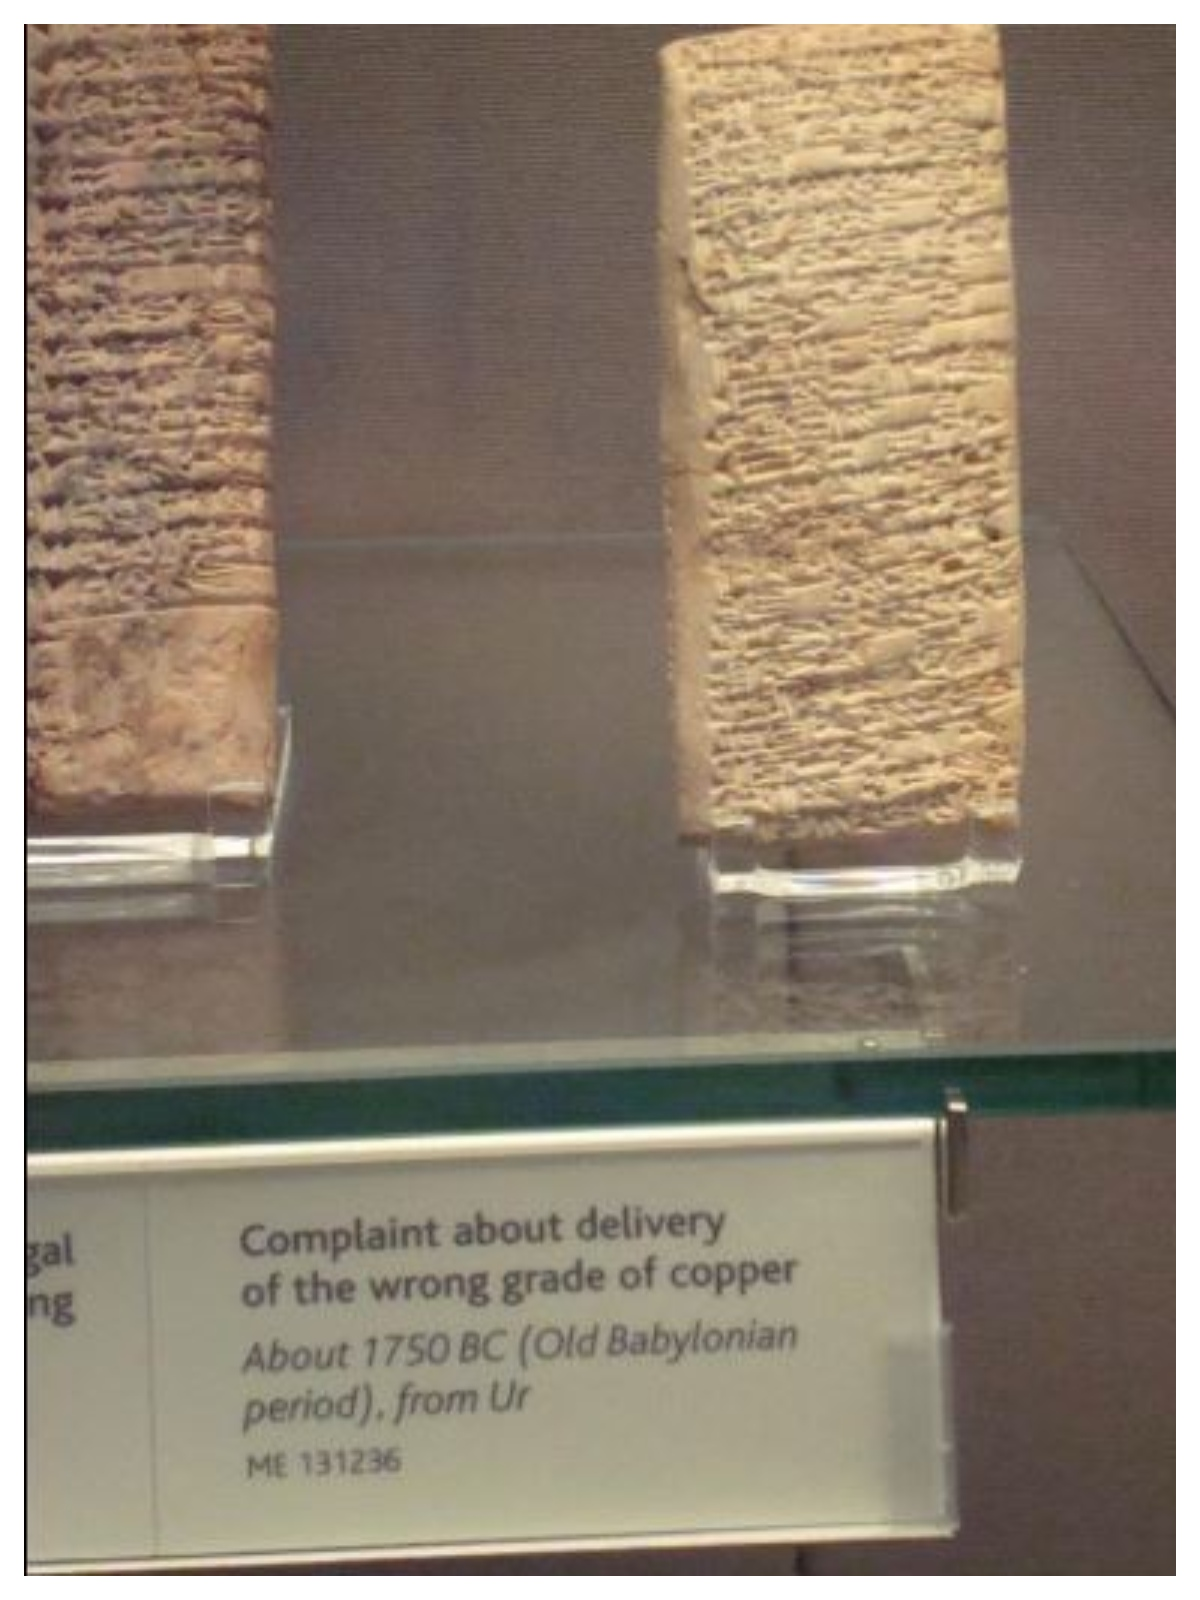 Sumerian tablet of Oldest customer complaint